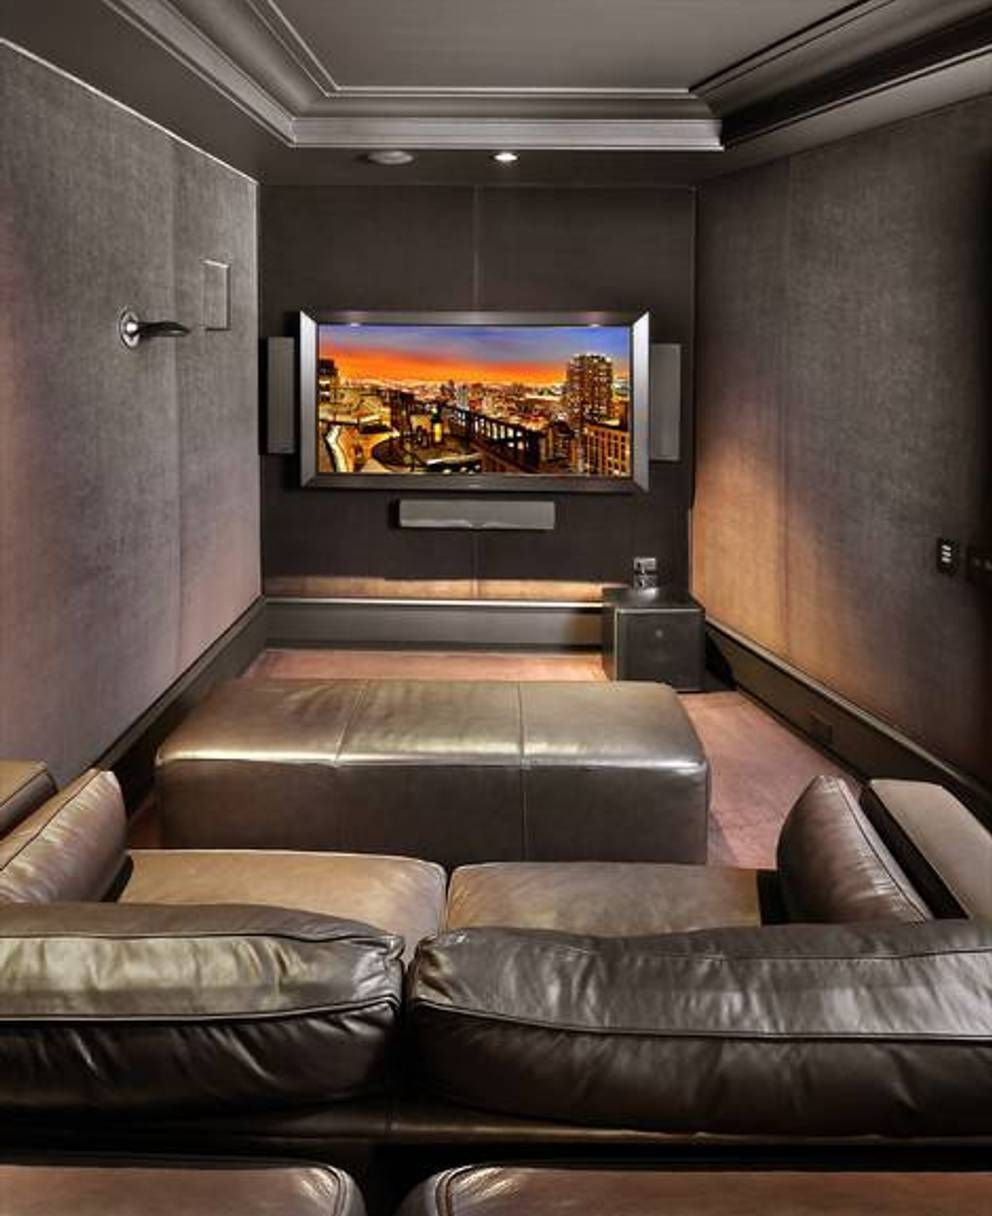 Home Design And Decor Small Home Theater Room Ideas Modern Small Home Theater Room With Lea Small Home Theaters Home Theater Rooms Home Theater Room Design